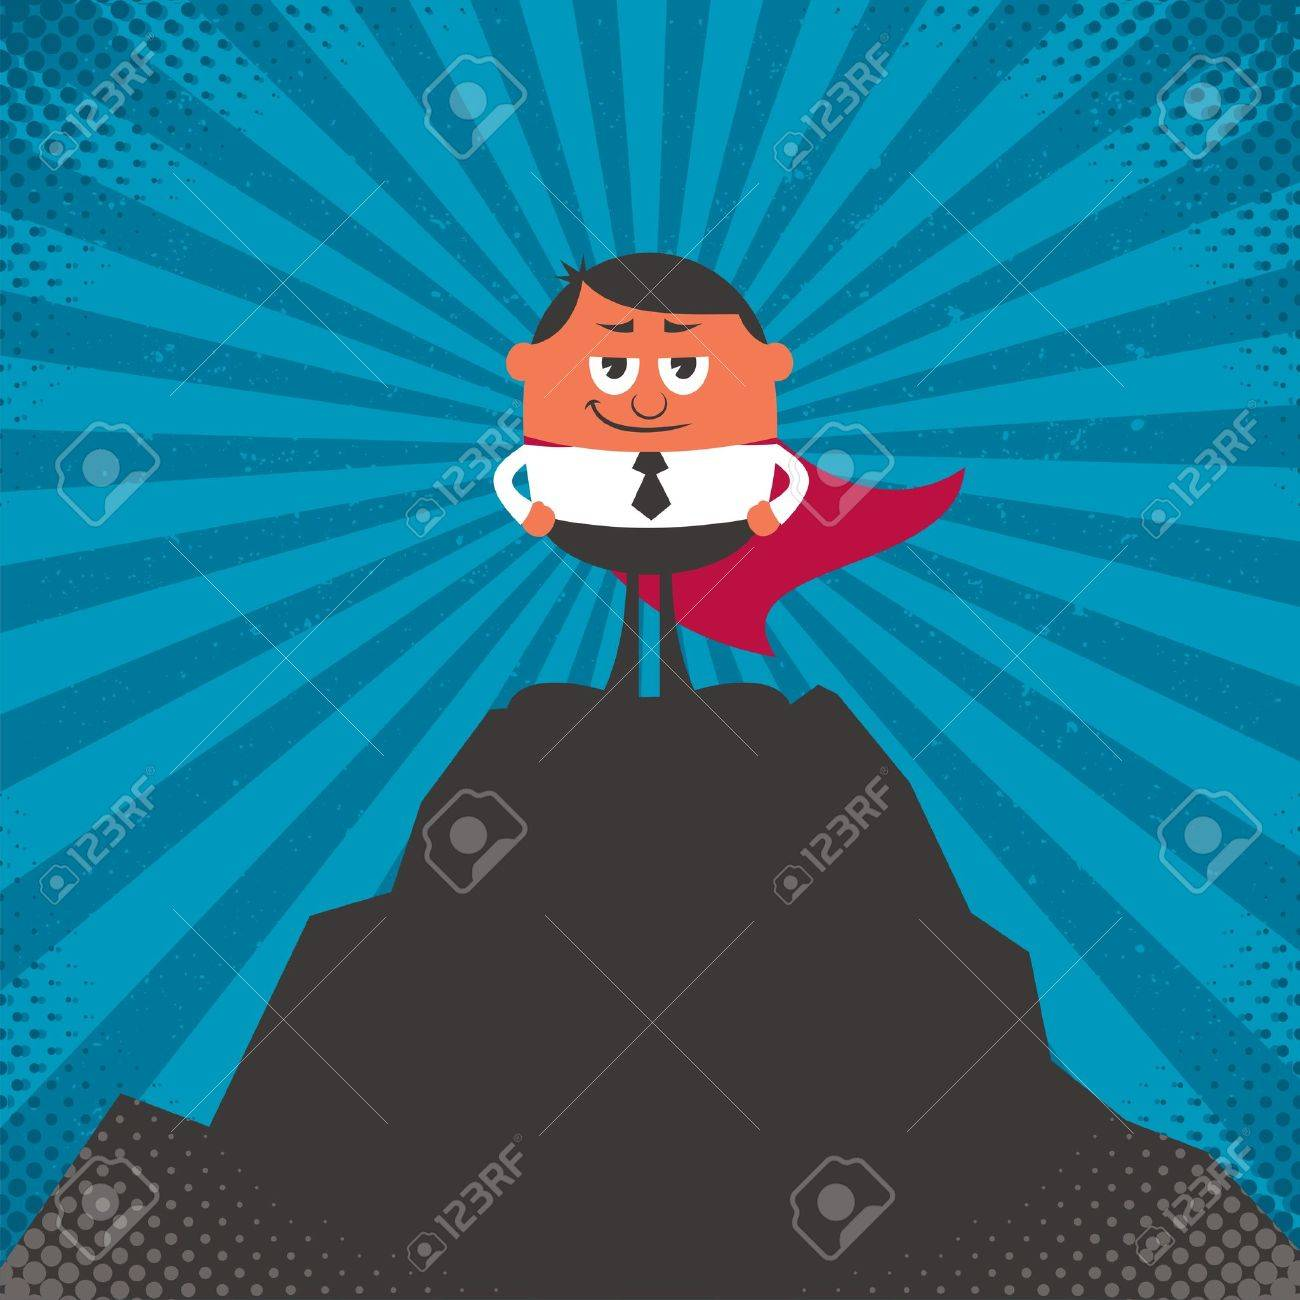 Conceptual illustration for business success, depicting character on top of mountain. Stock Vector - 17606921